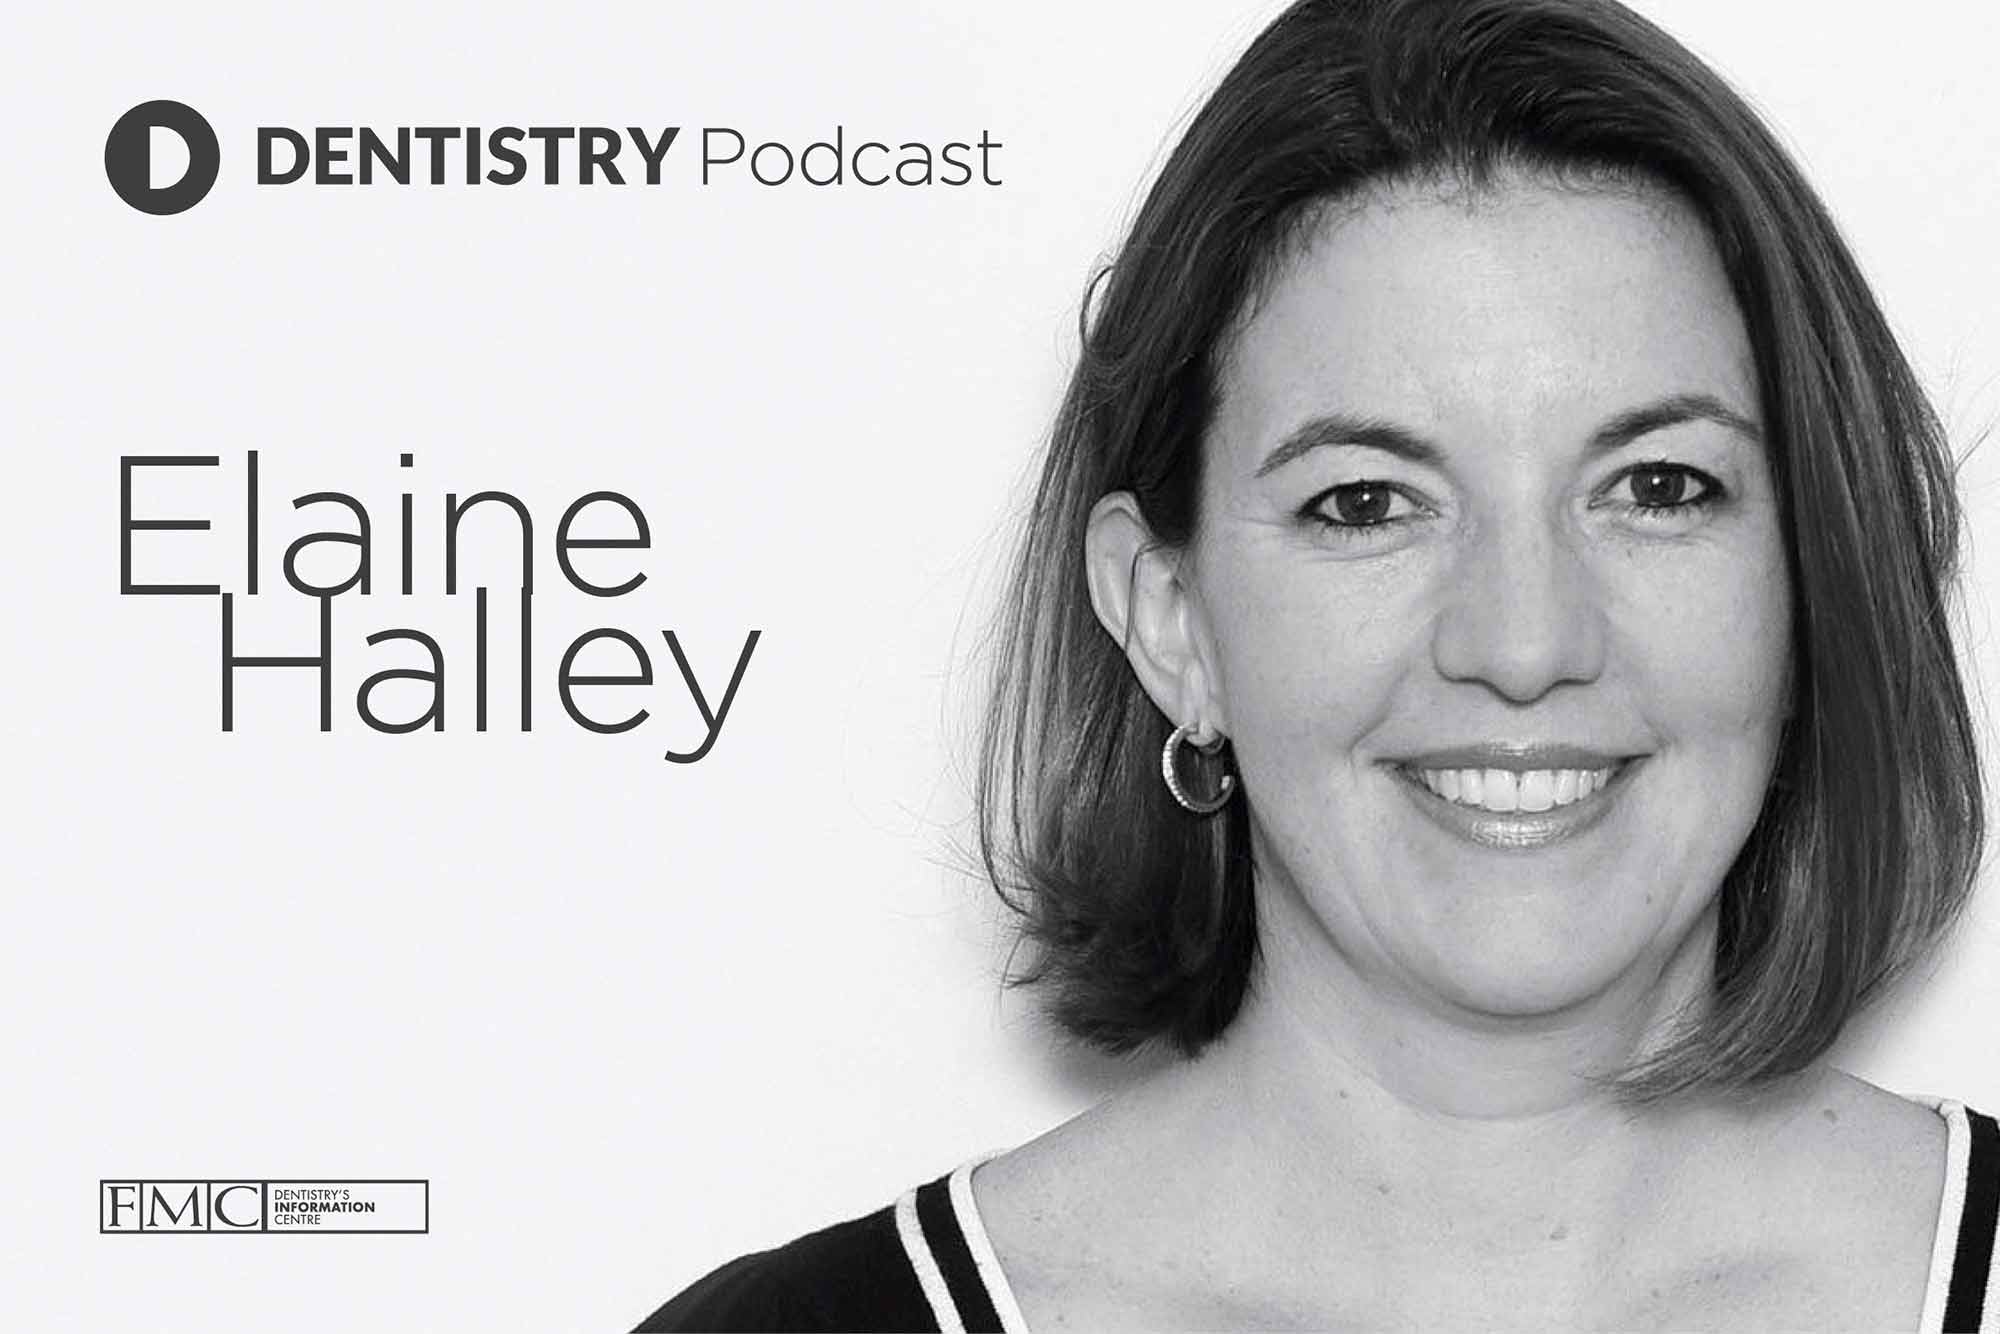 In this week's podcast episode, we speak to Elaine Halley about lockdown, cosmetic dentistry and the Online Dentistry Show